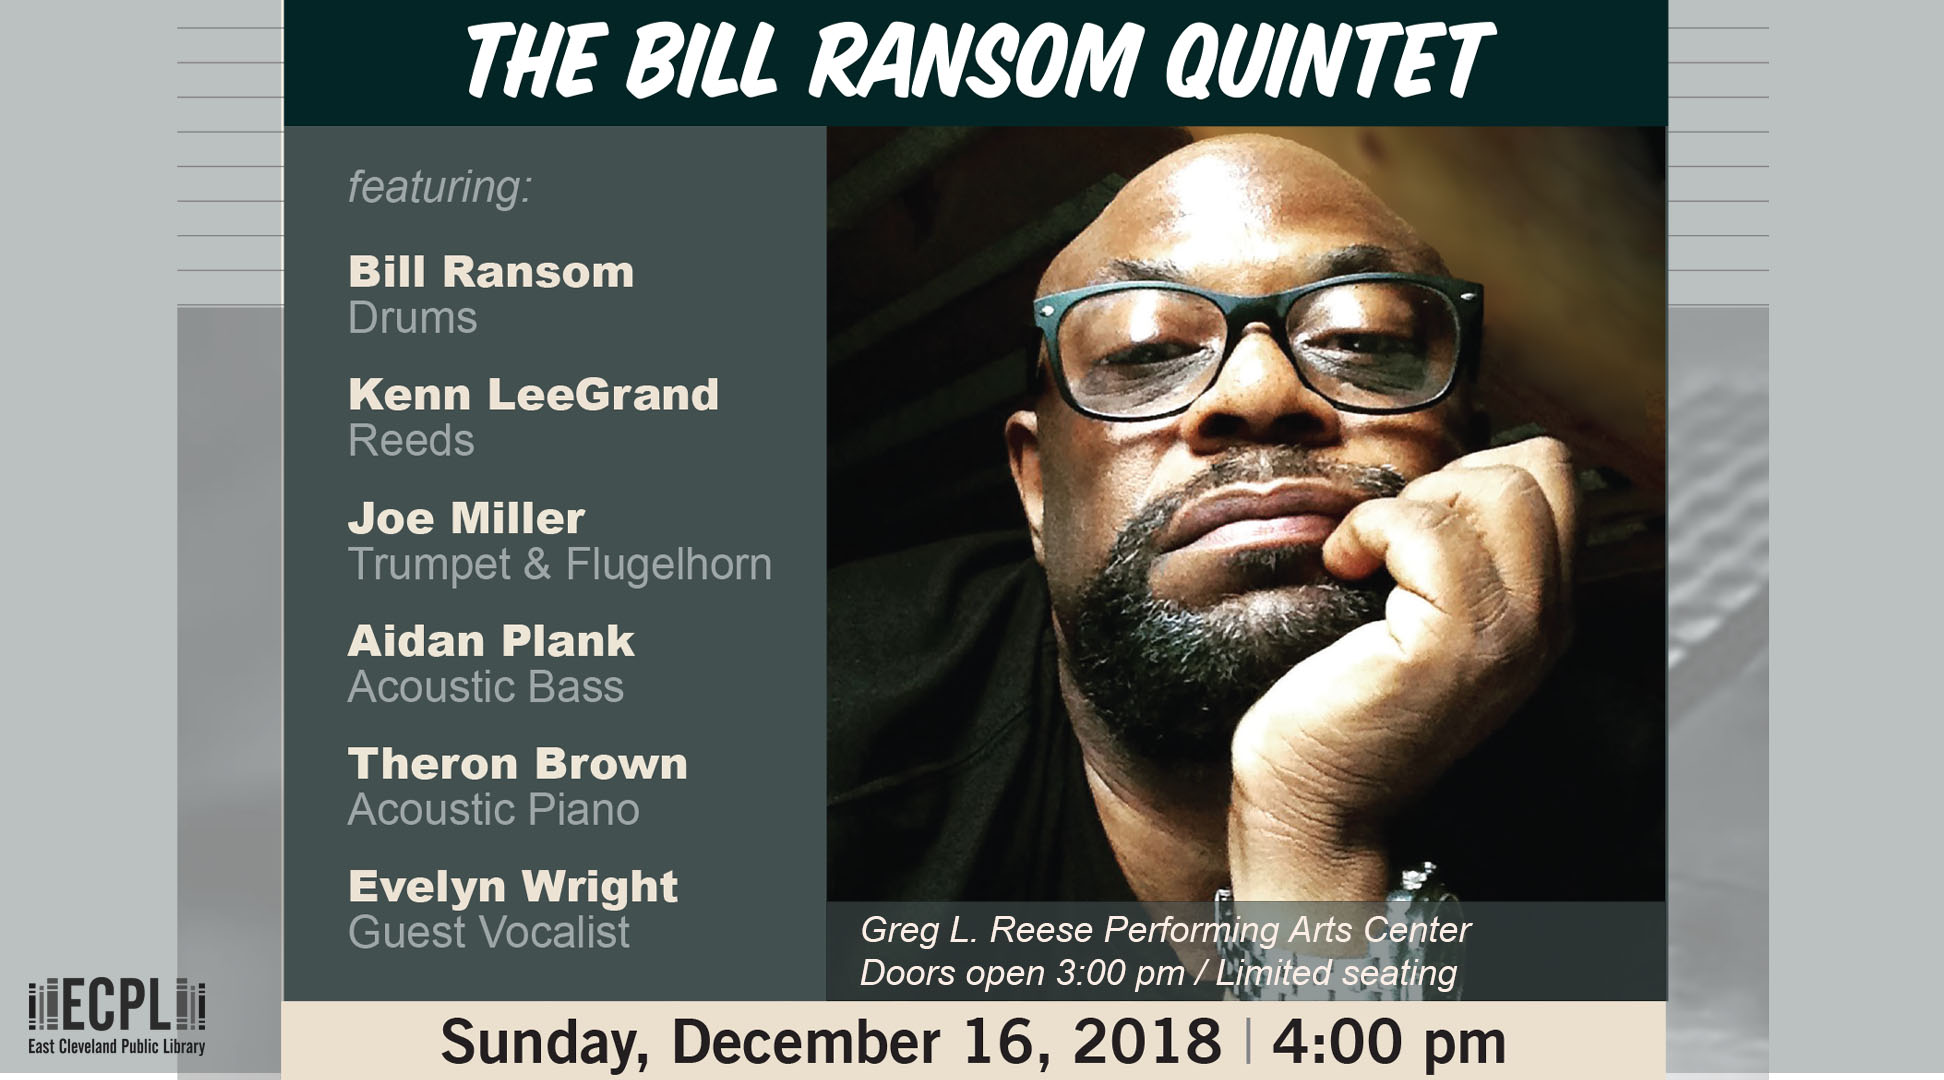 The Bill Ransom Quintet